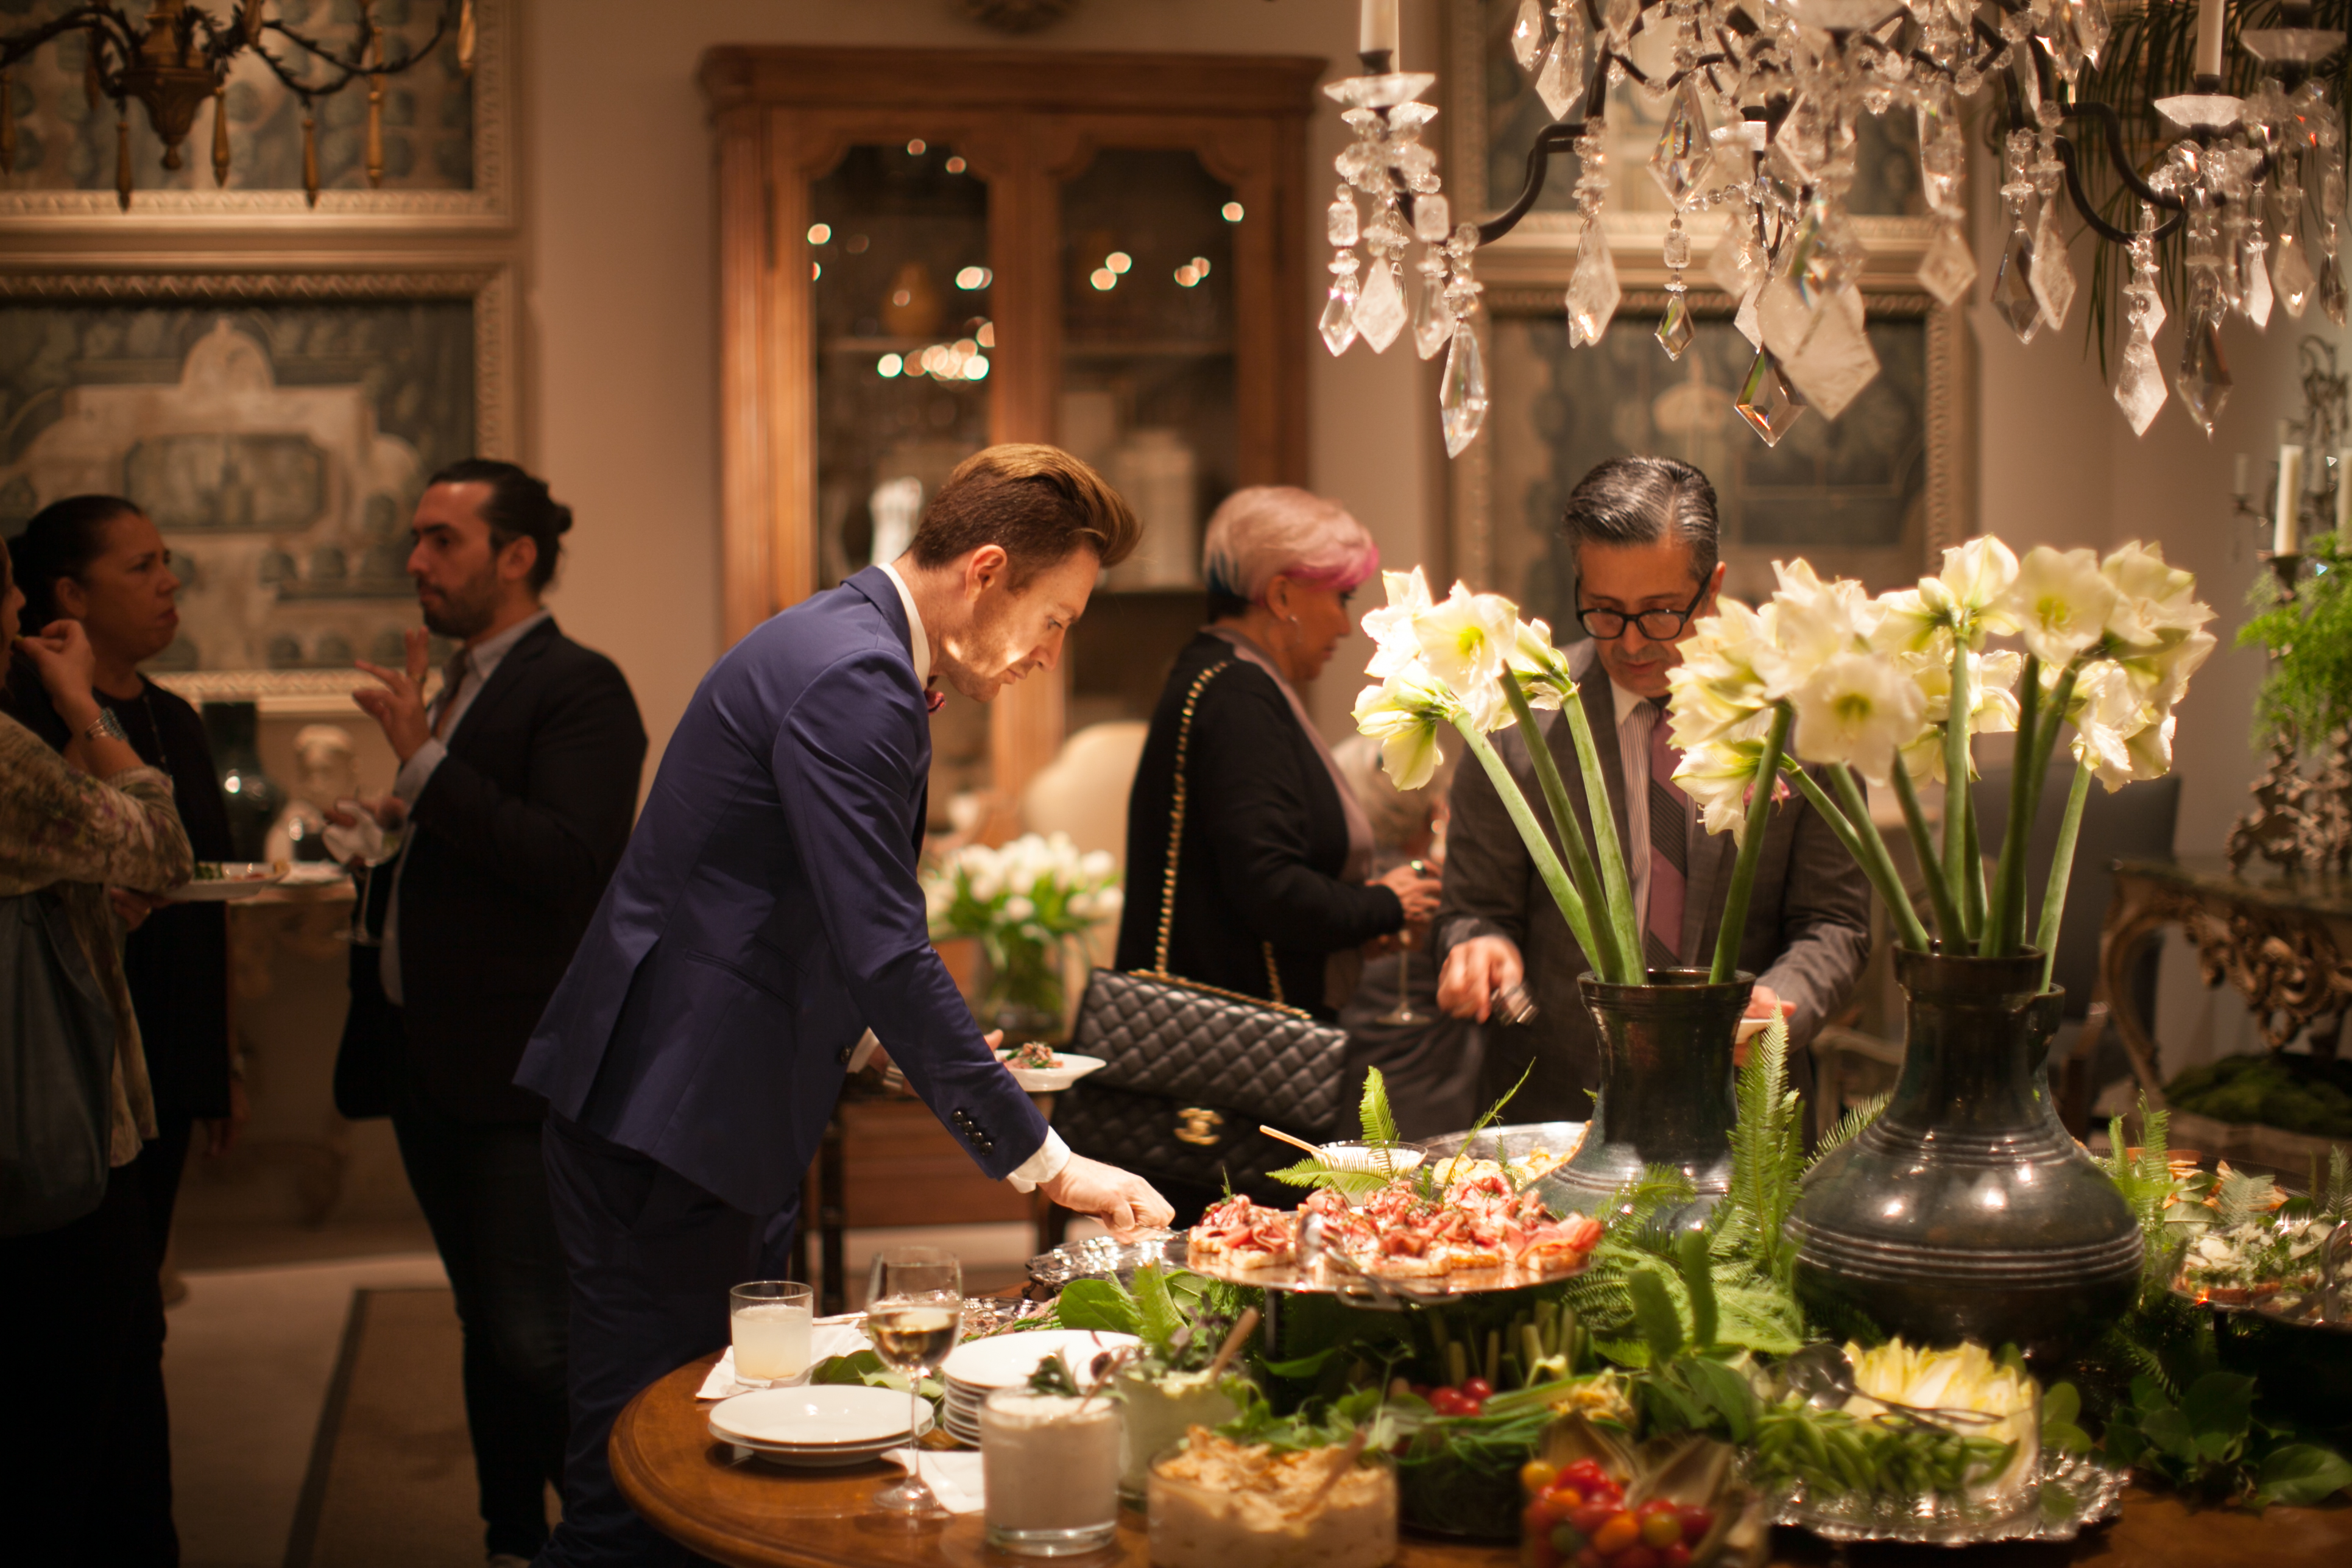 Guests enjoy hors d'oeuvres at the party.